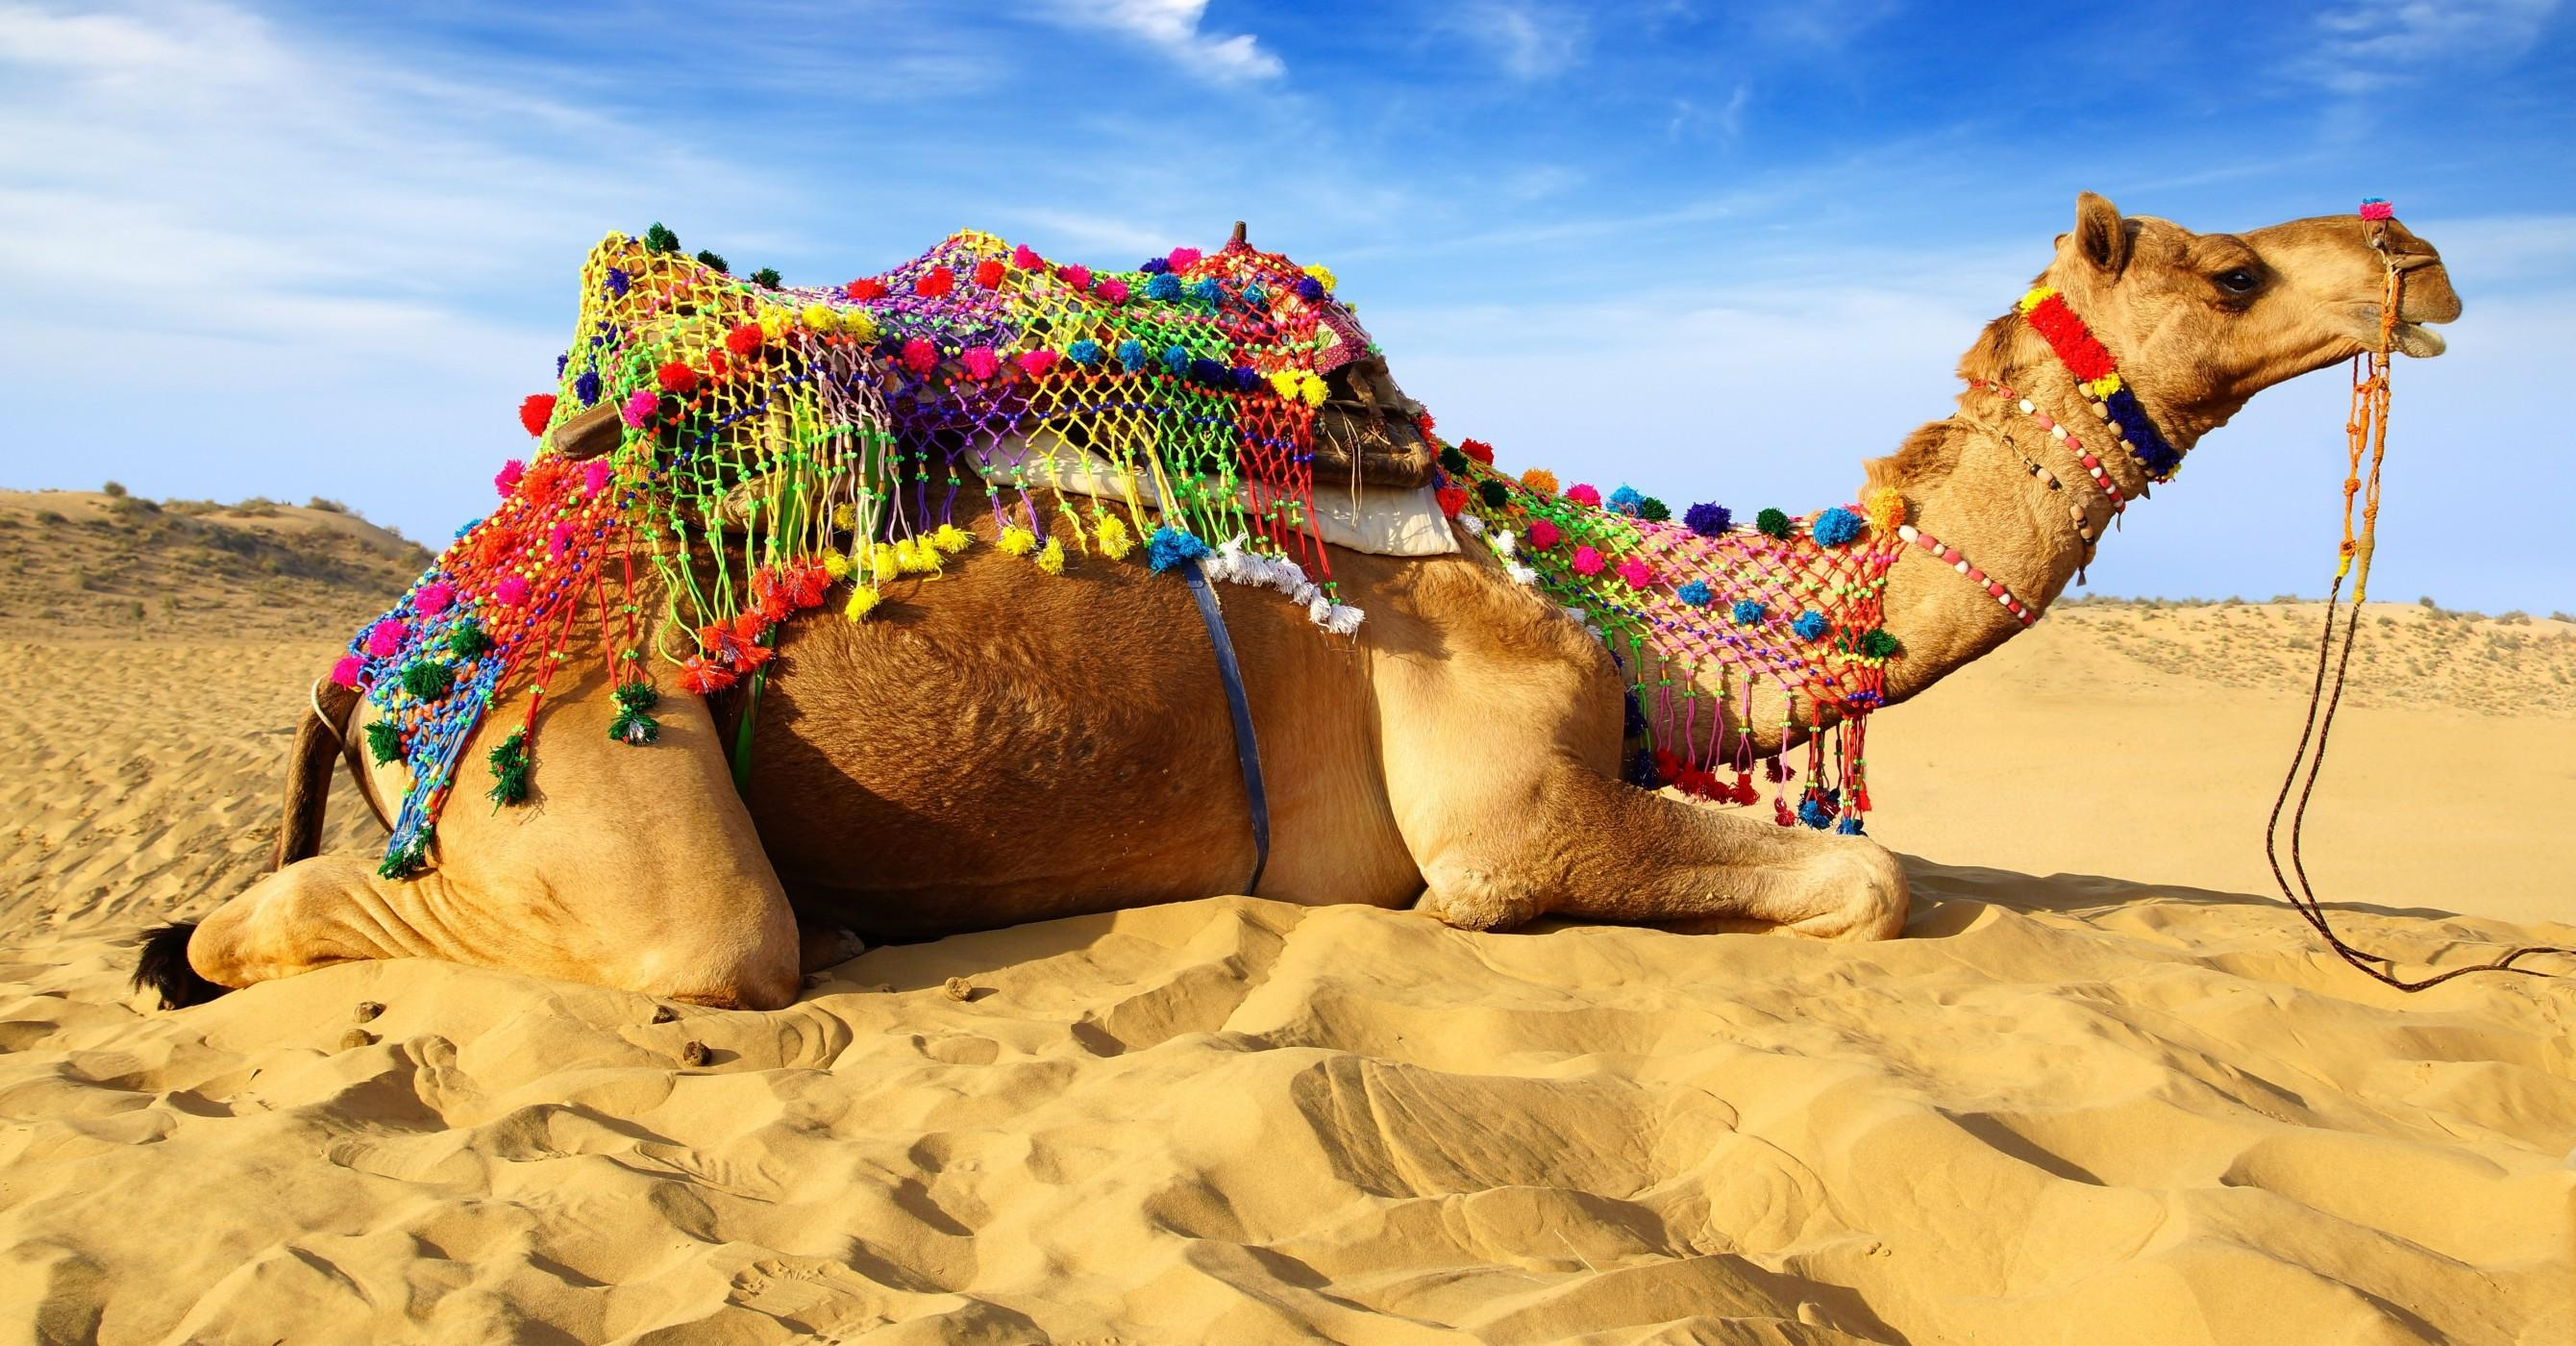 Download 2680x1400 Camel, Desert, Lying Down, Sand Wallpapers